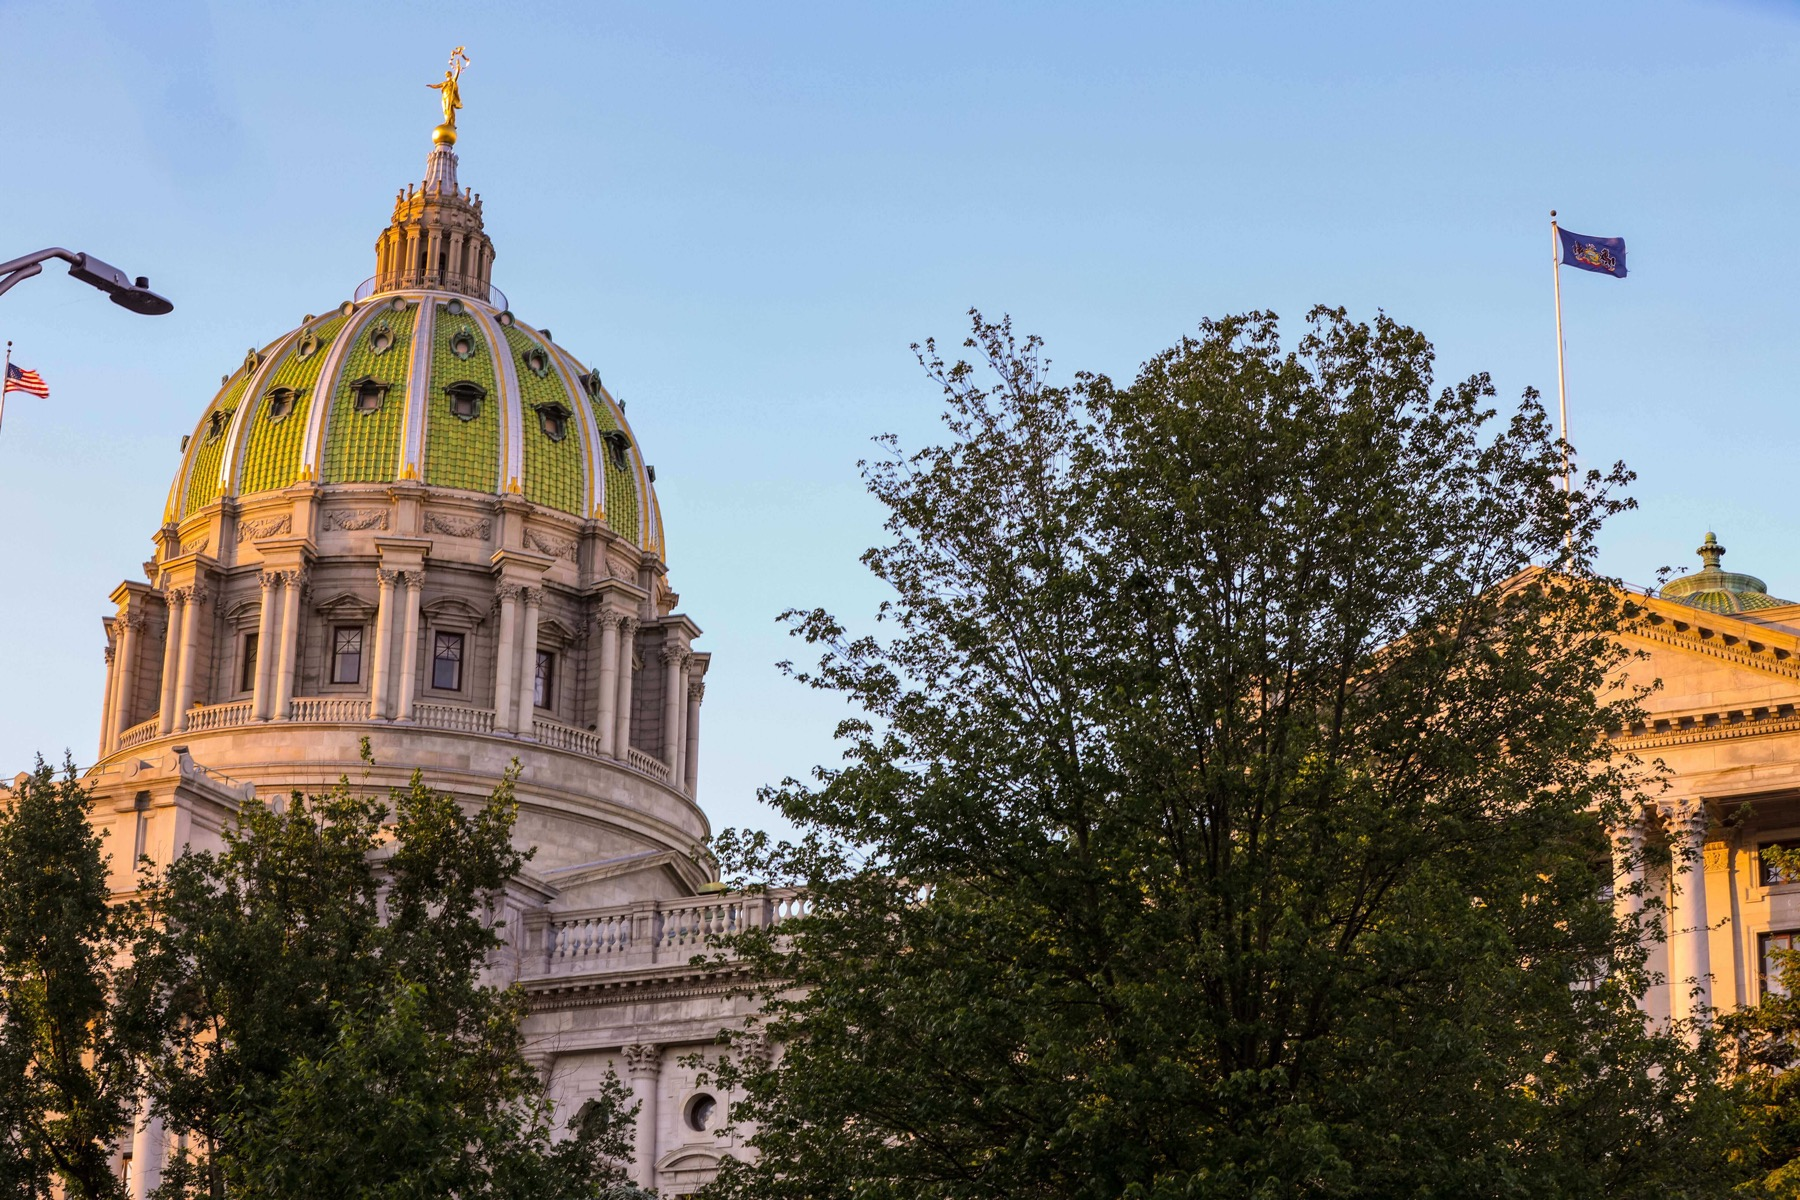 Exterior of the Pennsylvania state capitol building